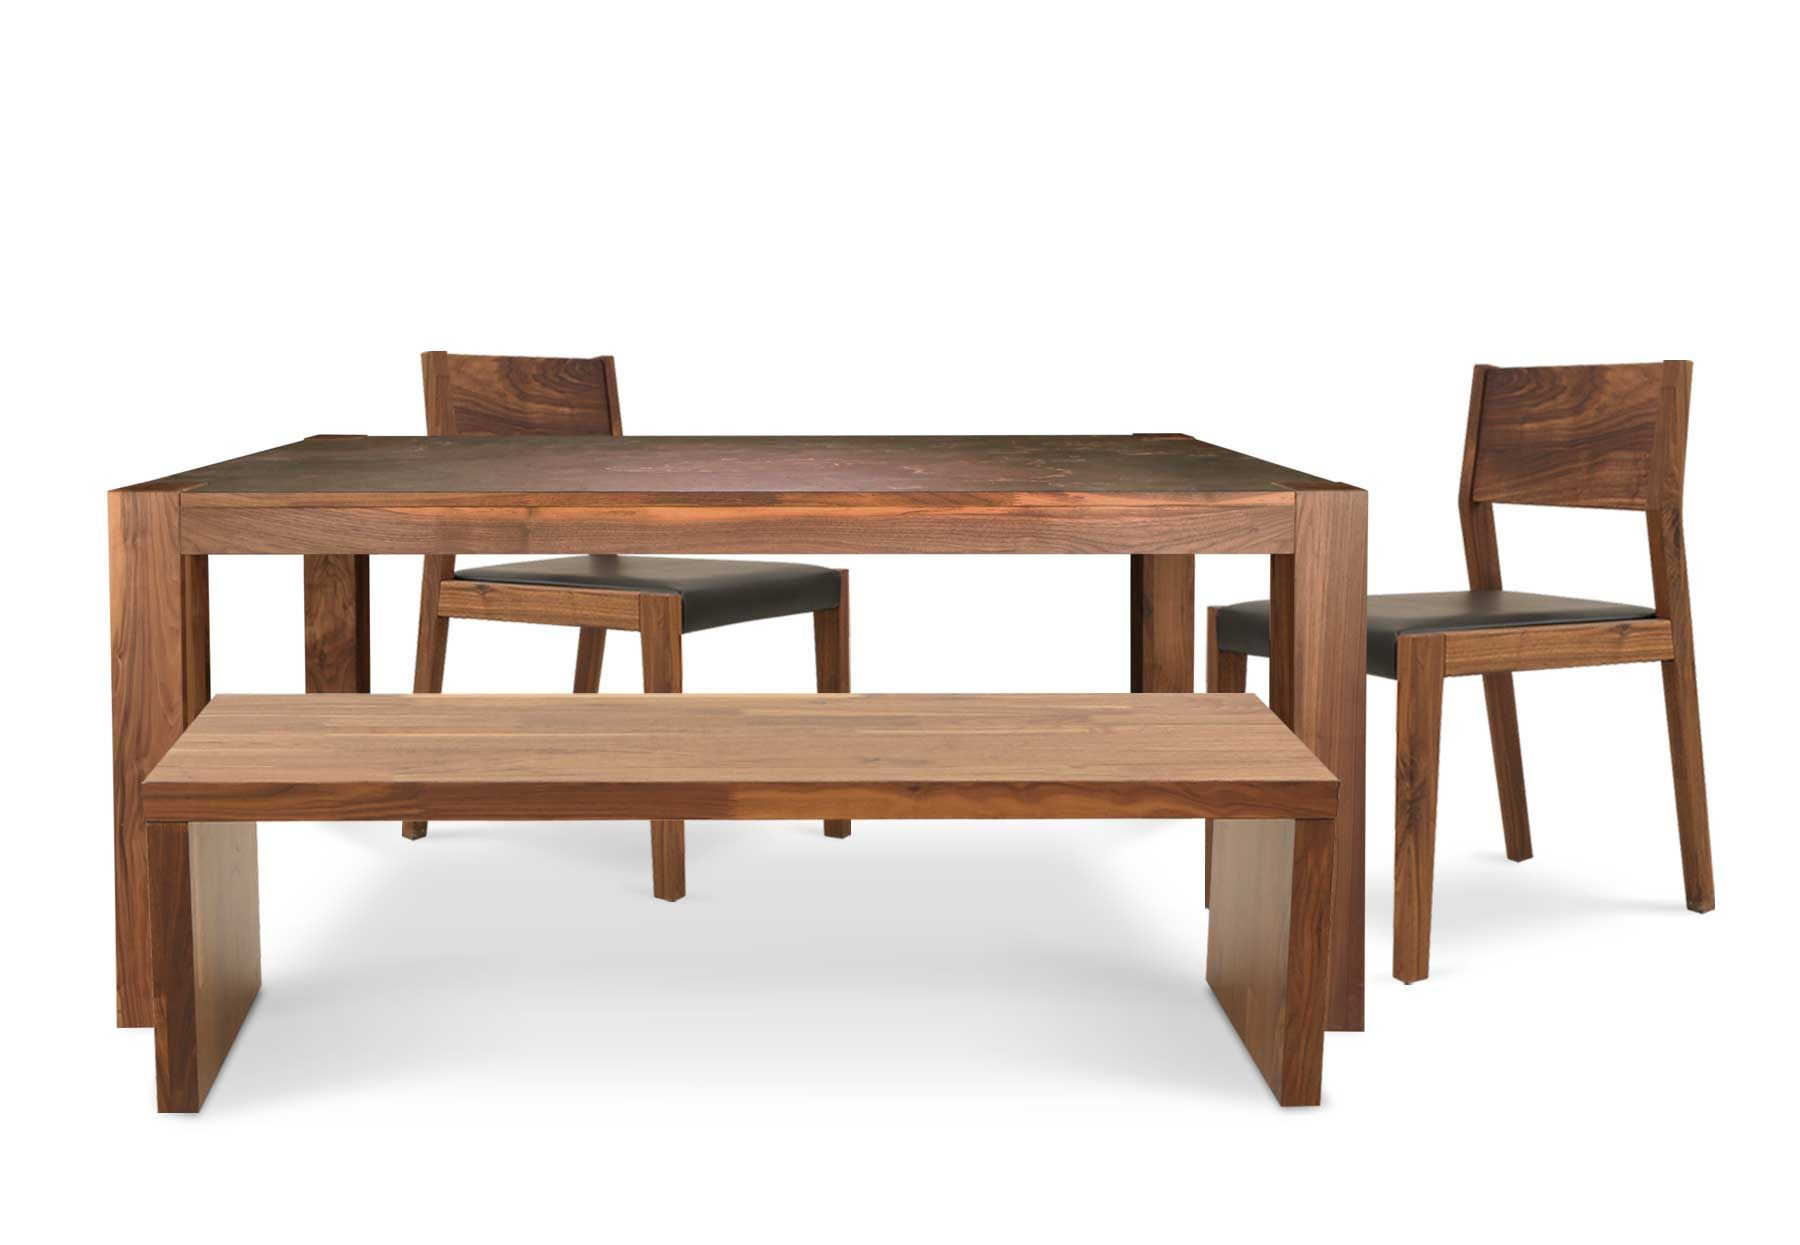 Brita Dining Table With Joran Low Bench And 2 Jacob Chairs